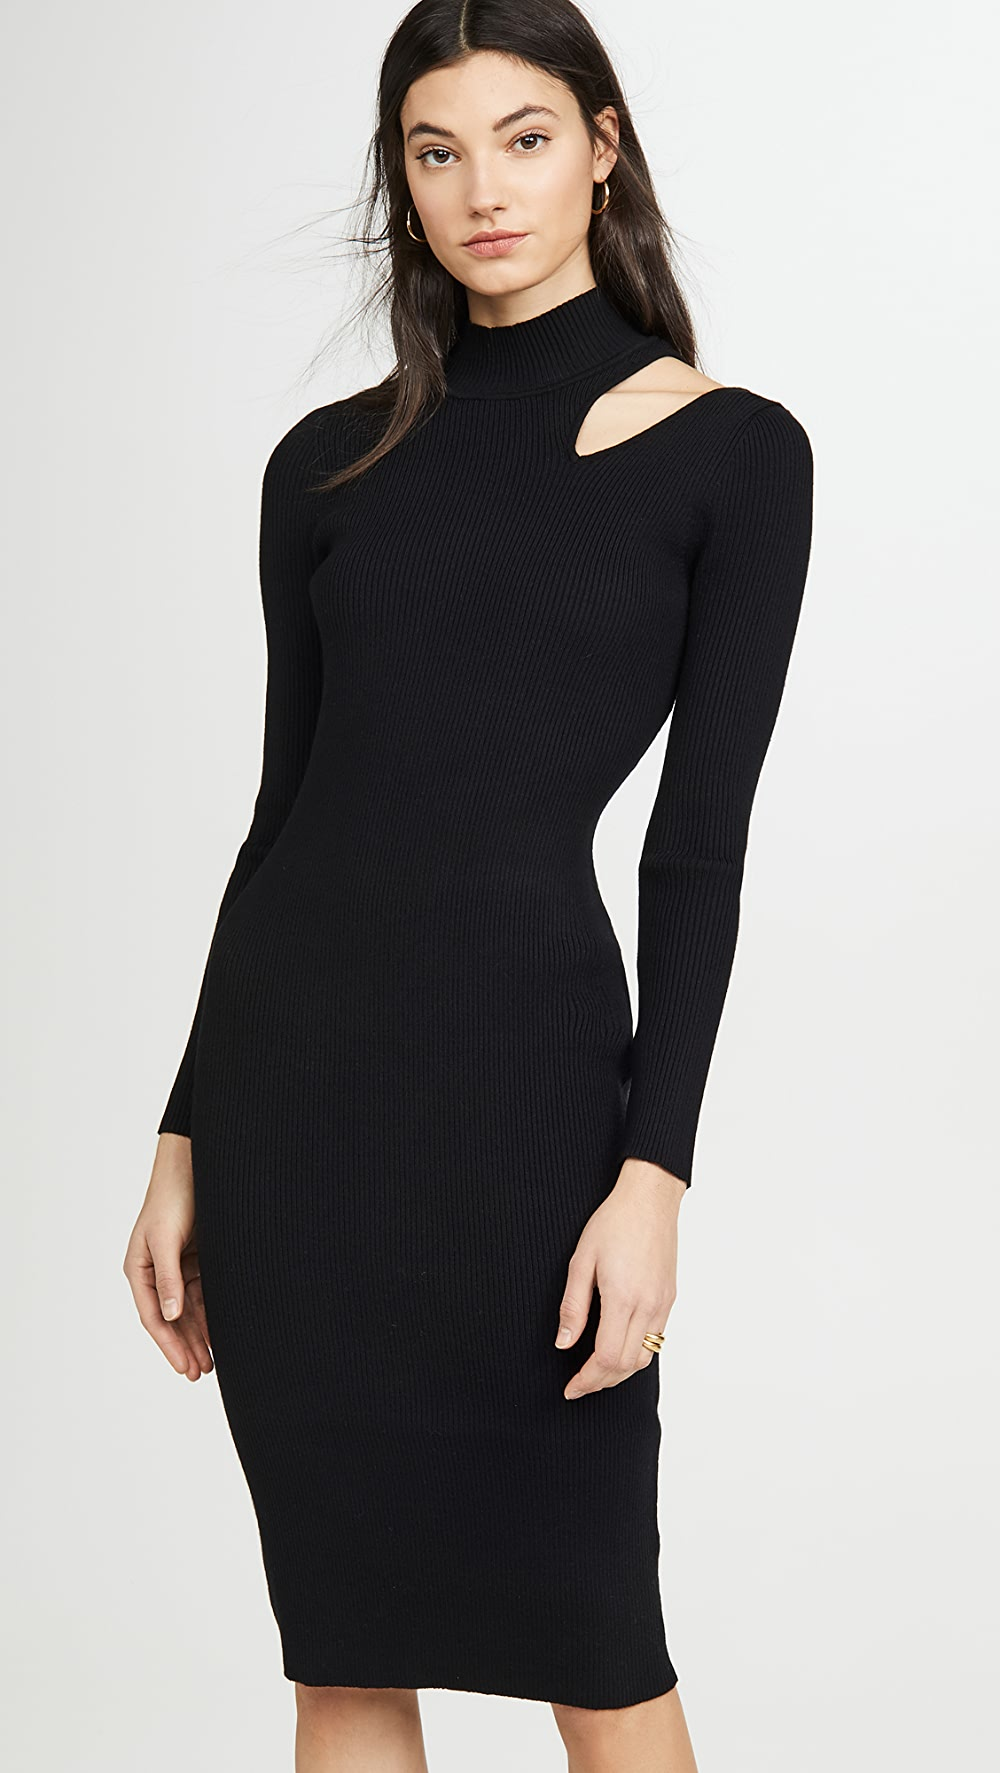 100% Quality Astr The Label - Vivi Sweater Dress Consumers First